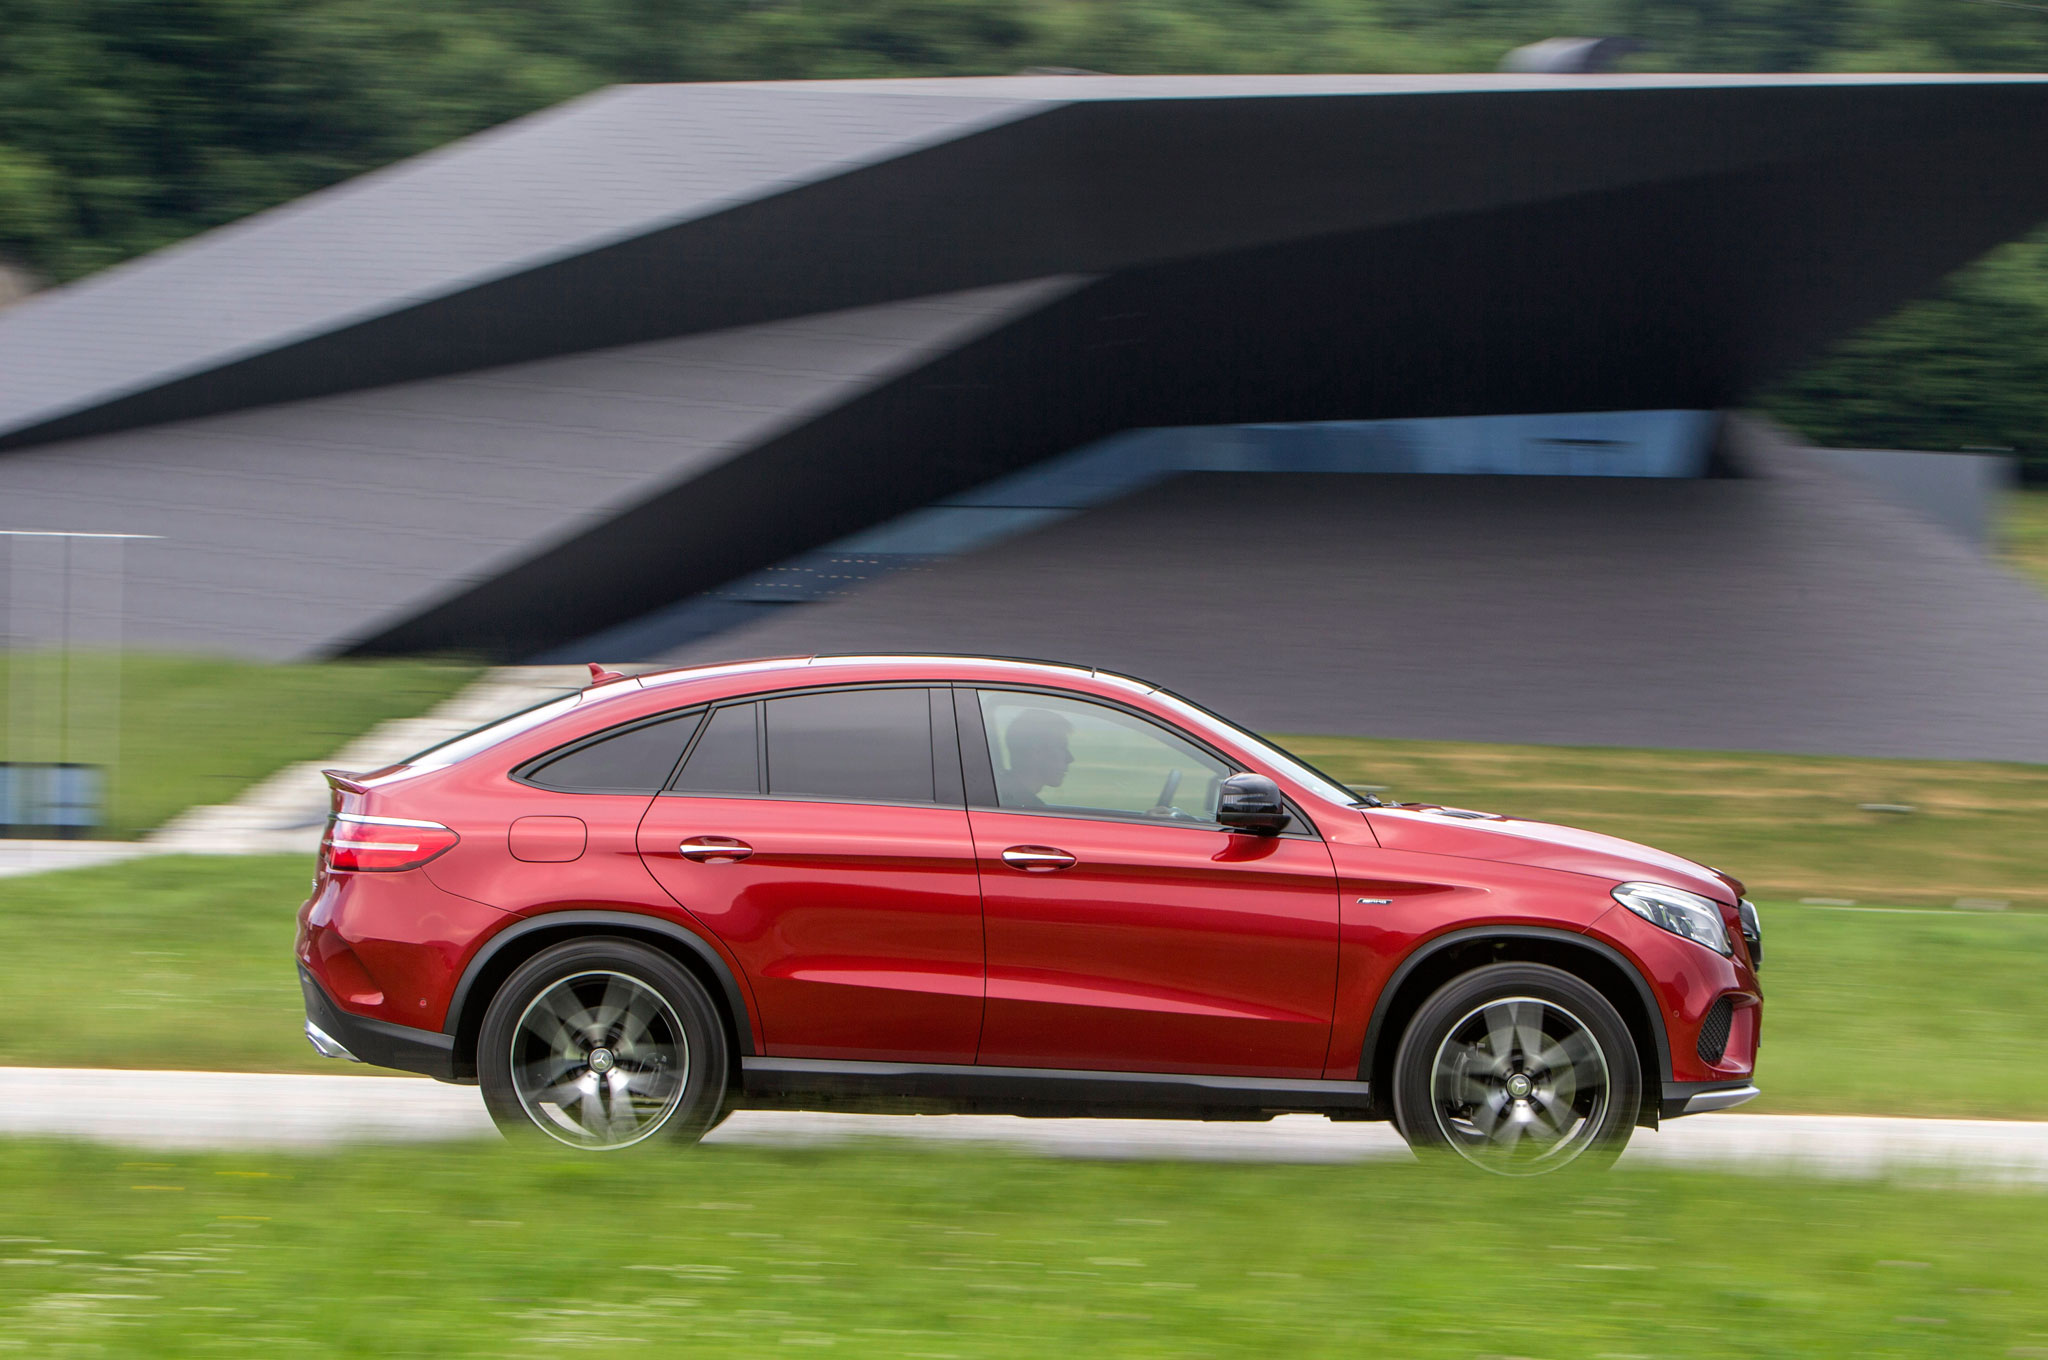 2016 Mercedes Benz GLE450 AMG 4Matic Coupe Side Profile In Motion 03